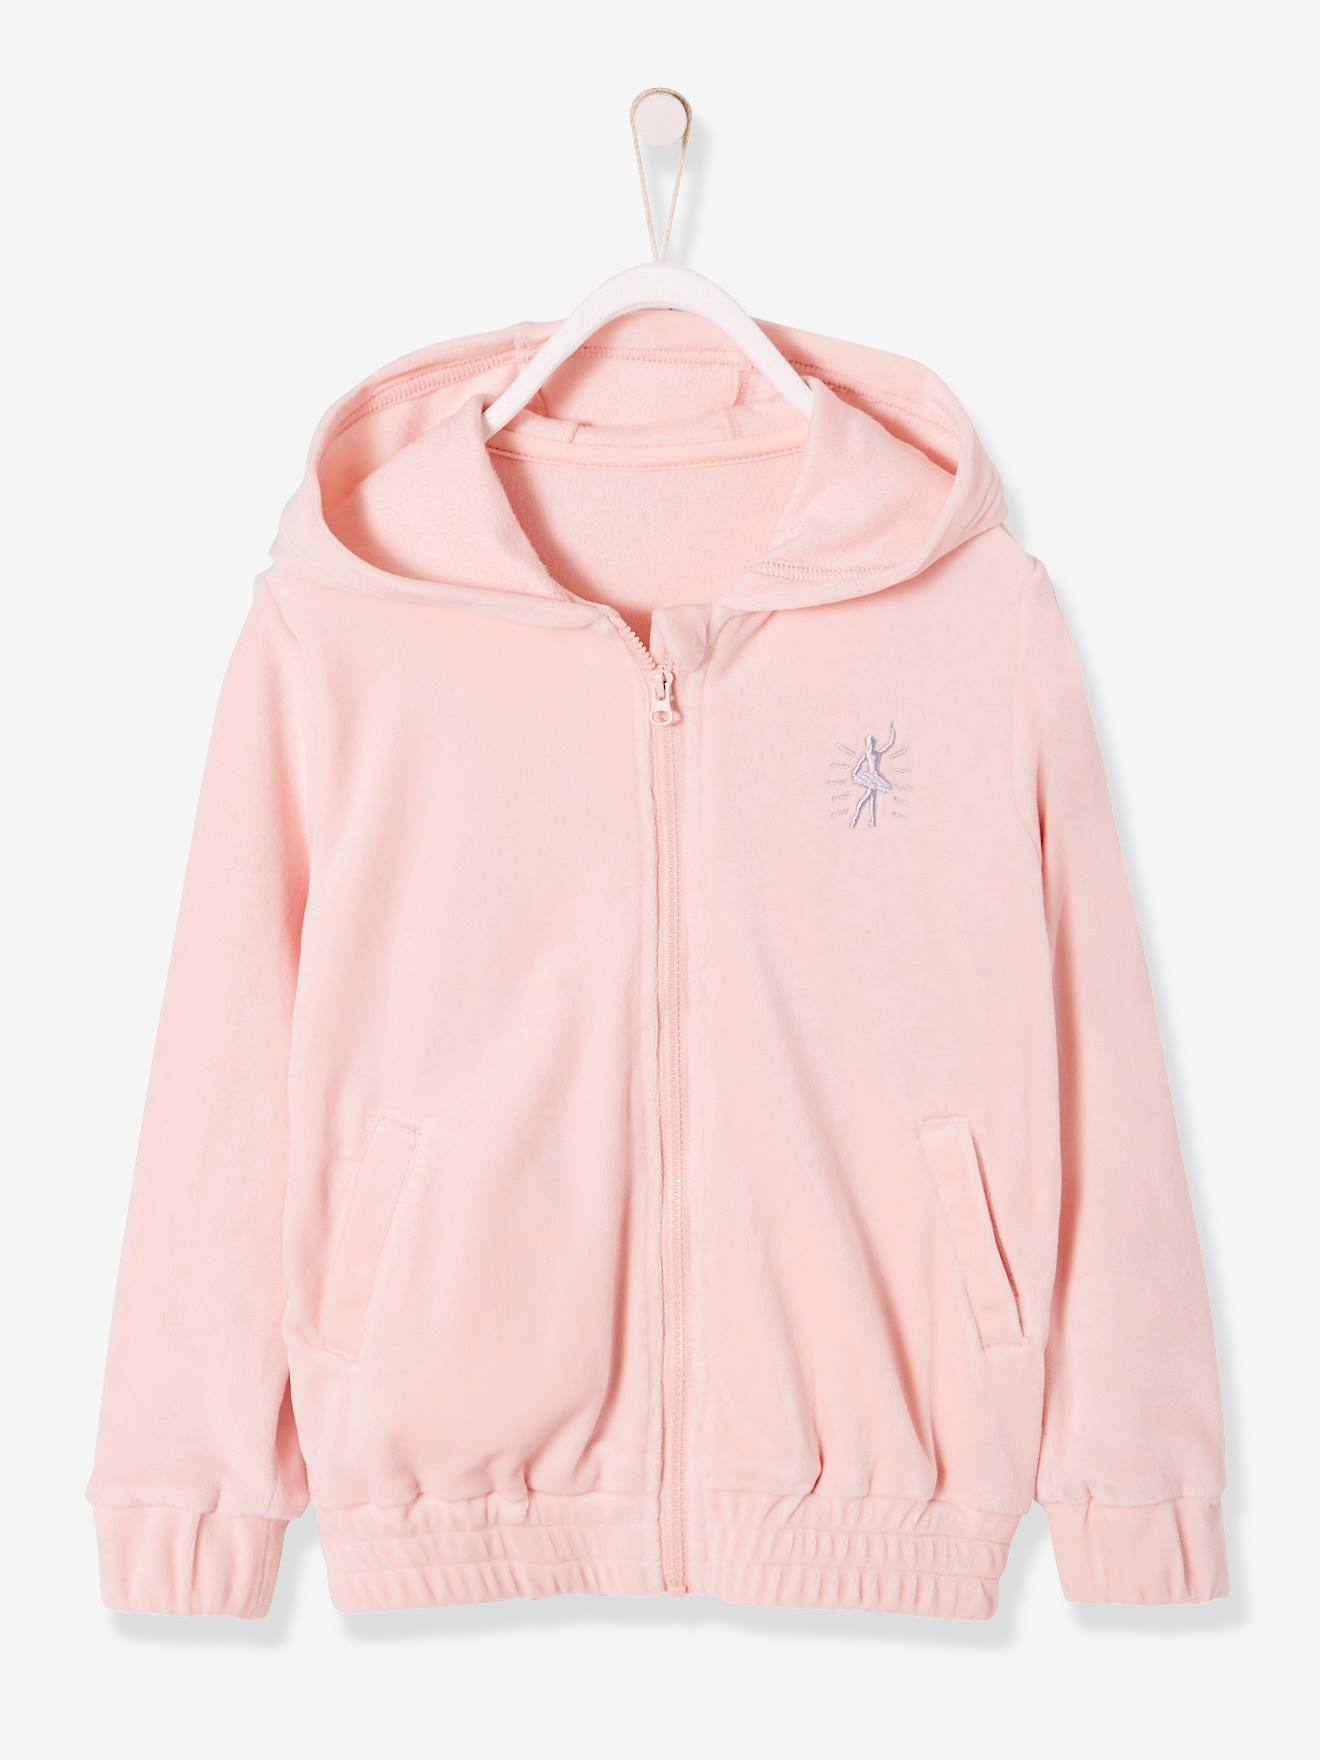 Sweat zippé fille en velours rose pale, Fille